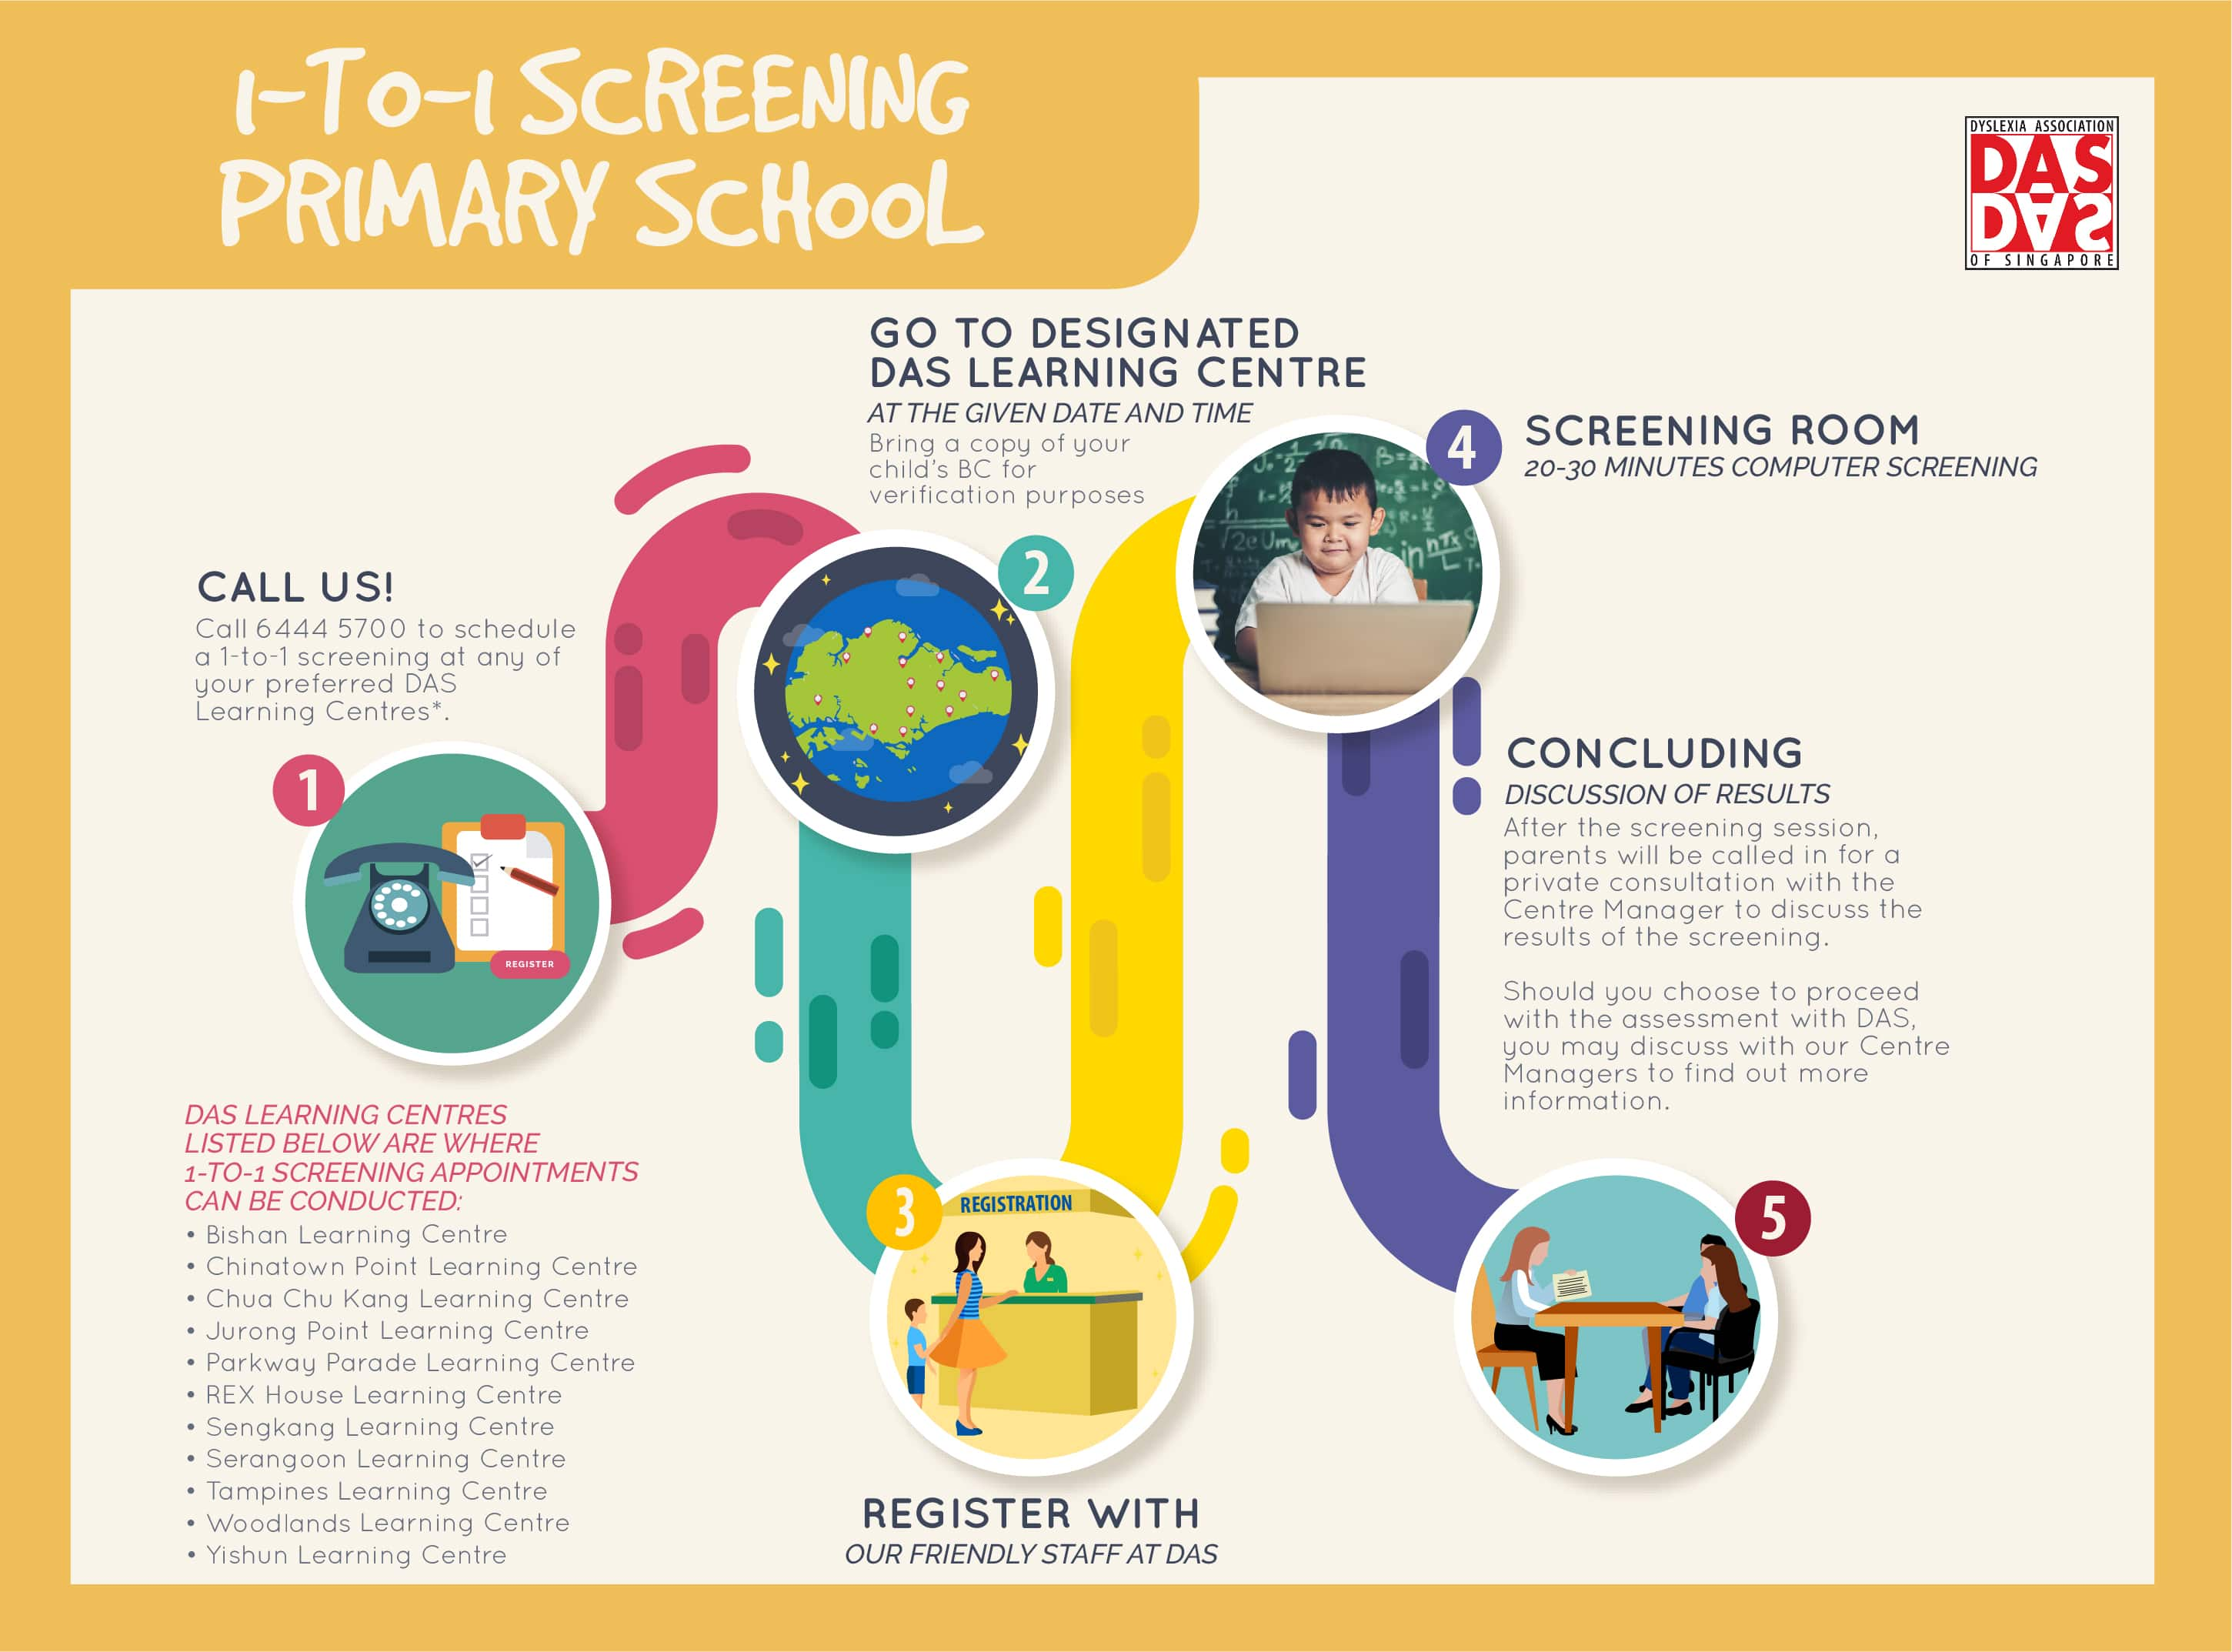 1 to 1 screening process 03 primary min